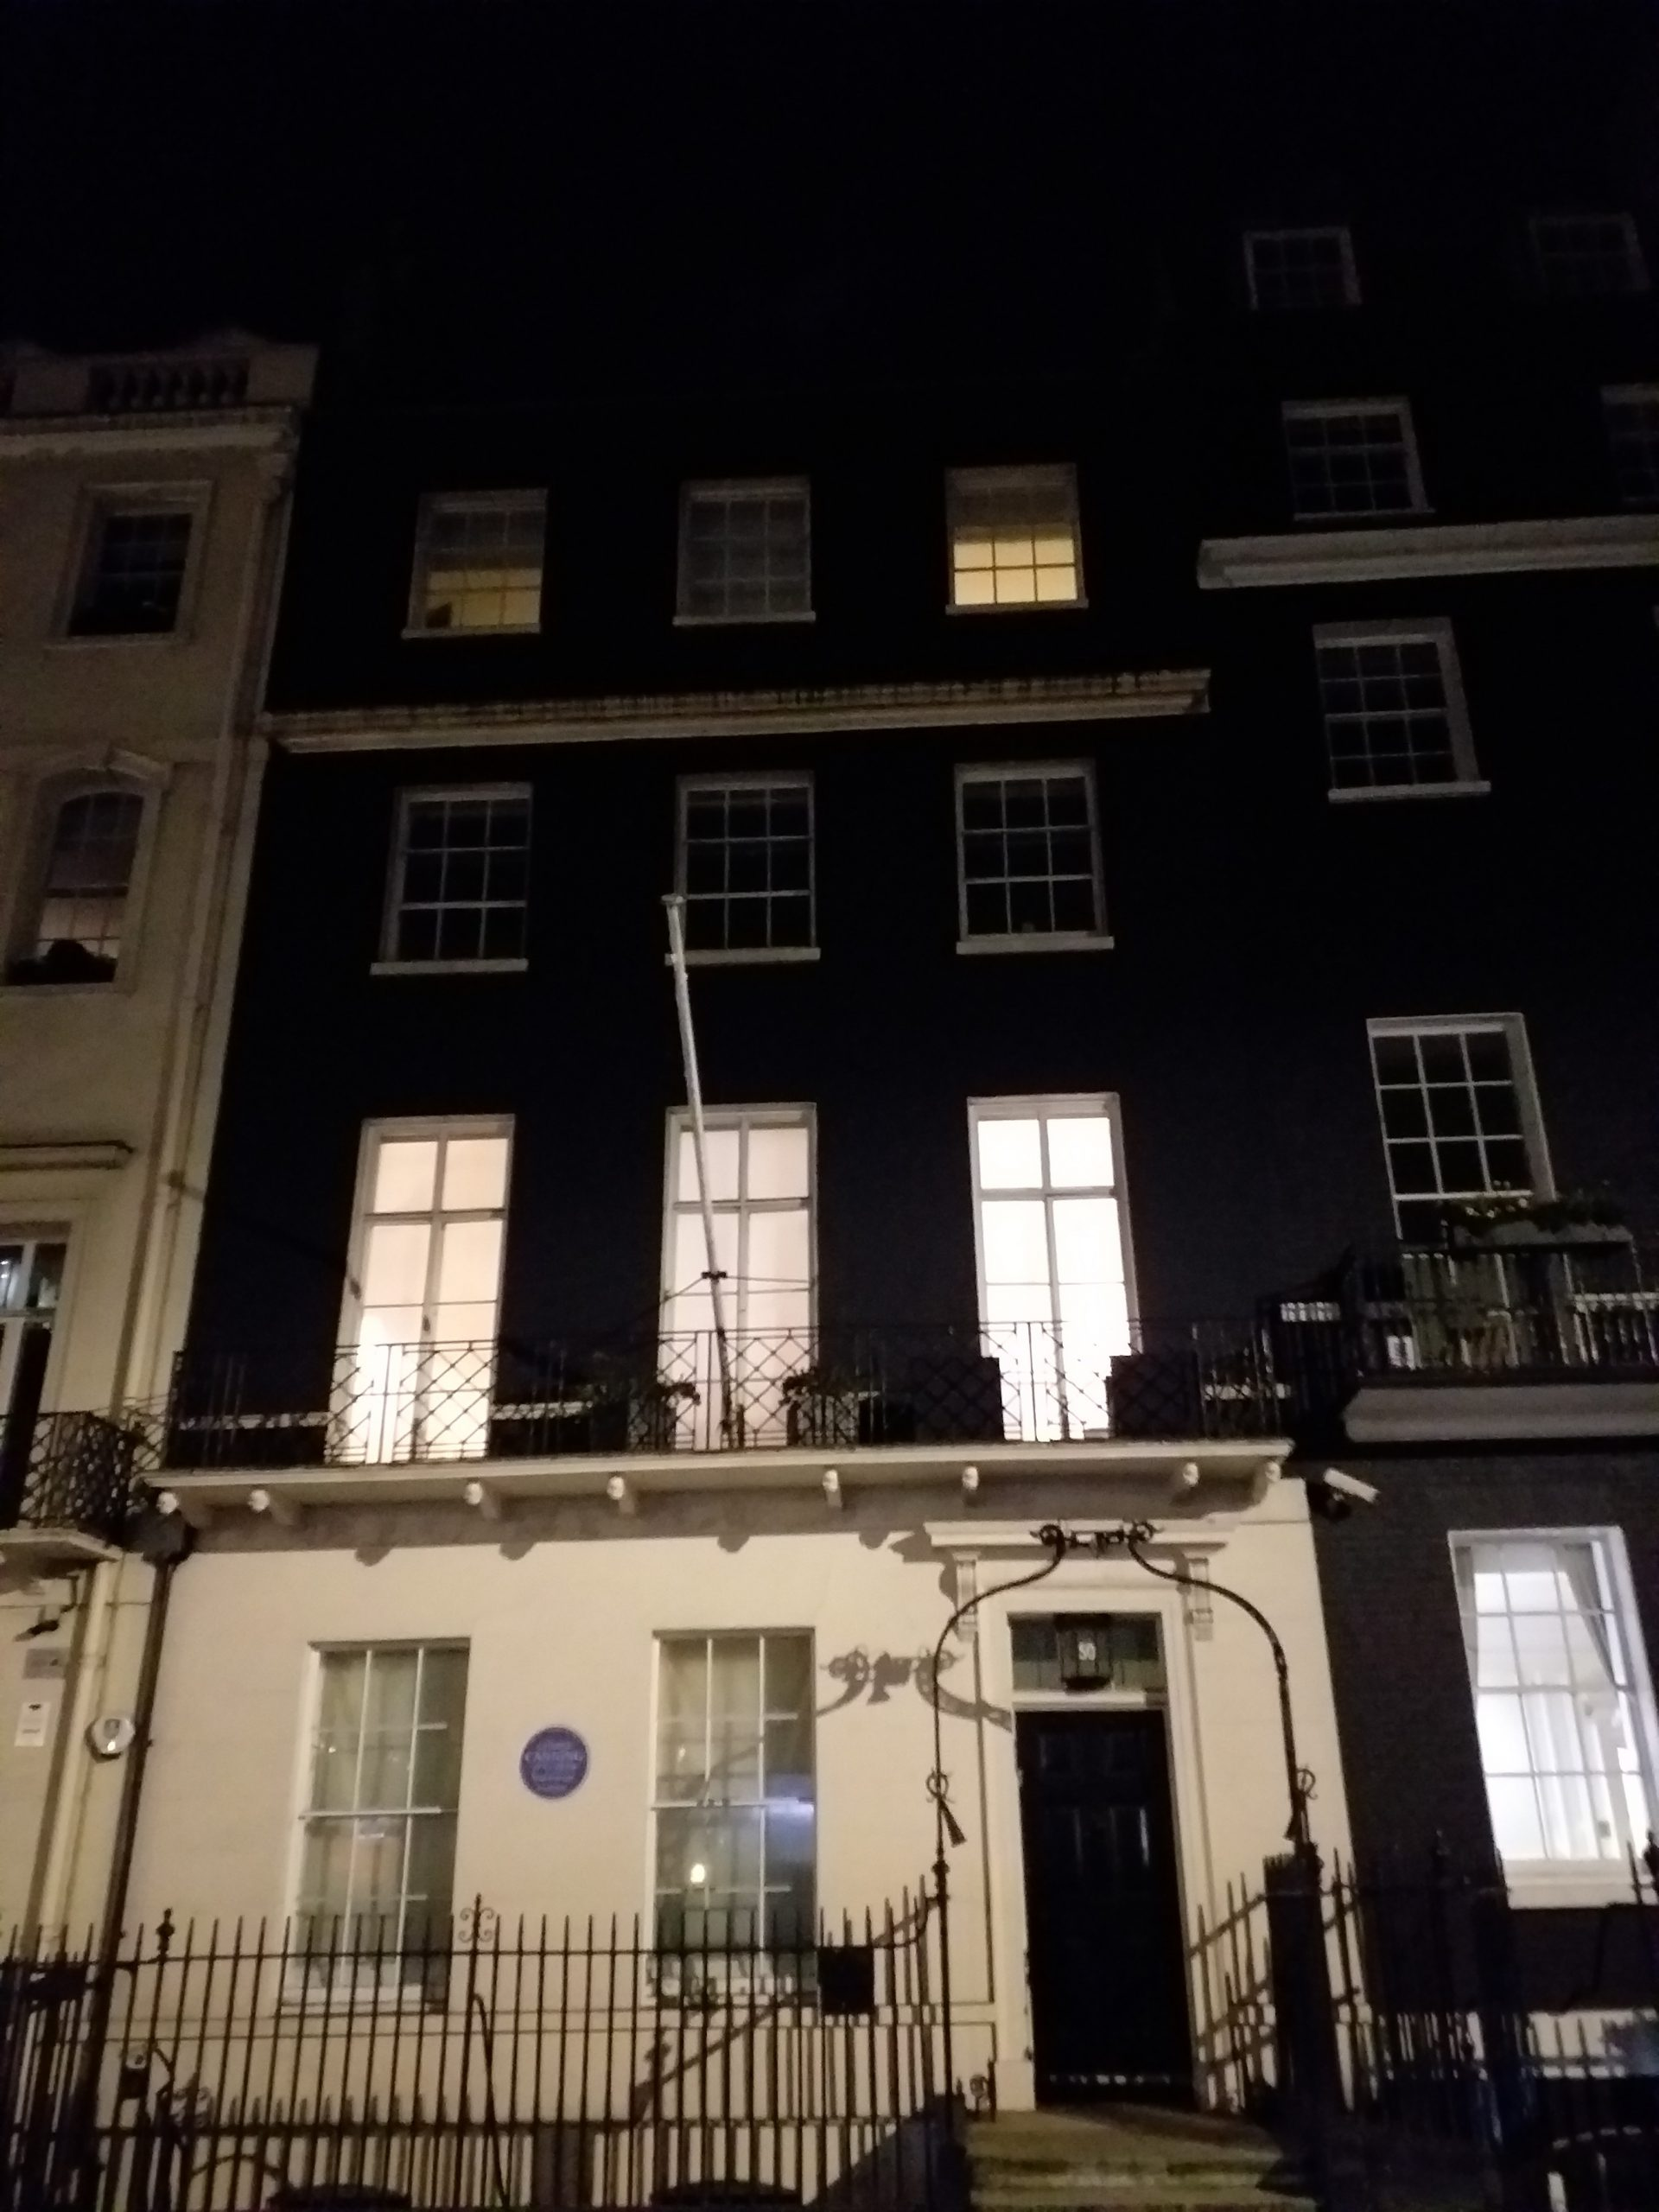 50 Berkeley Square, the most haunted house in London (photo: Philipp Röttgers)